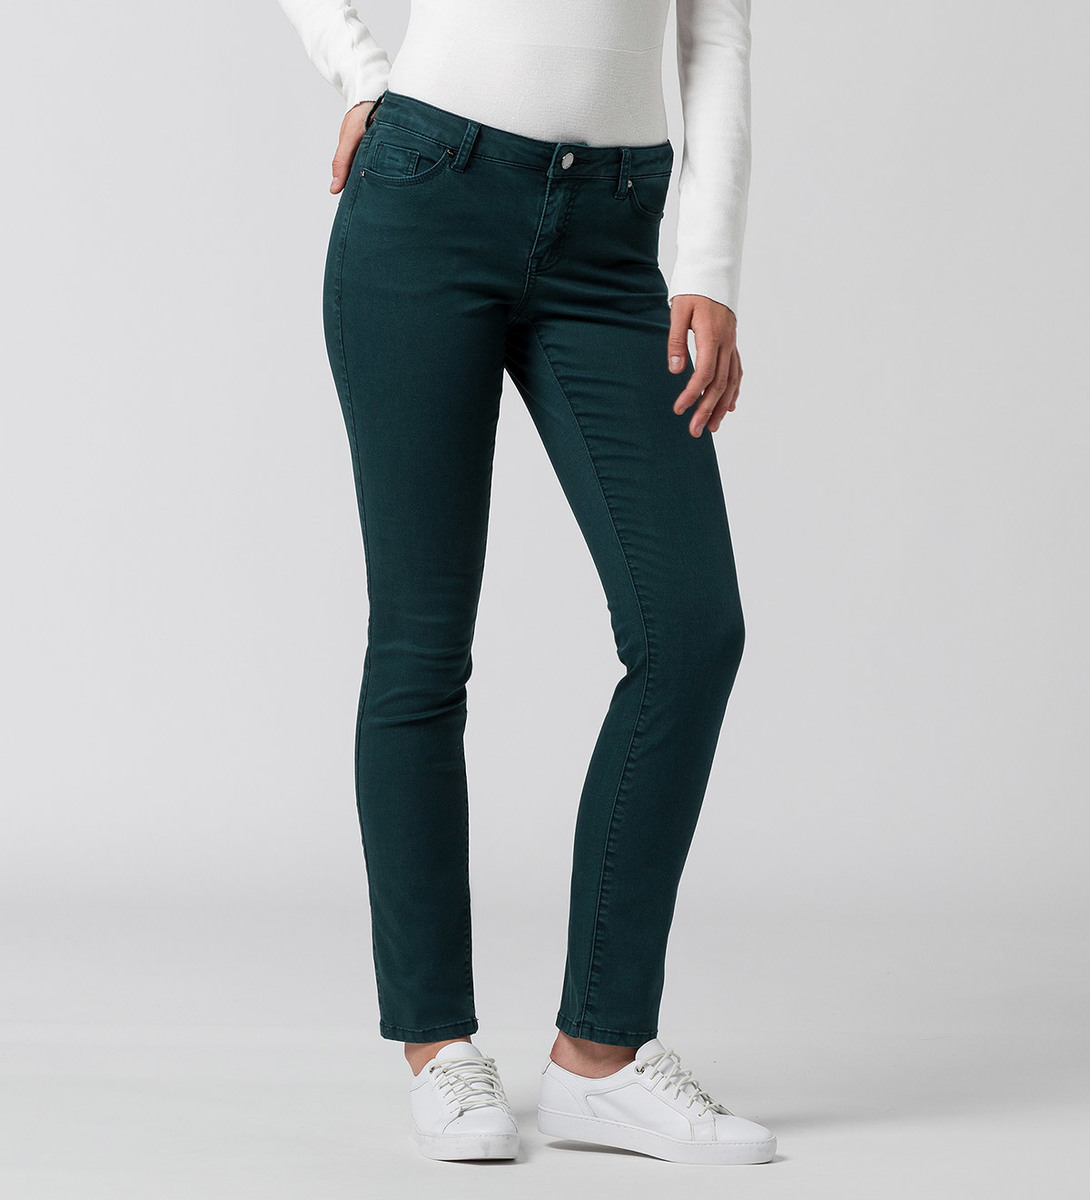 Jeans Seattle 32 Inch deep green